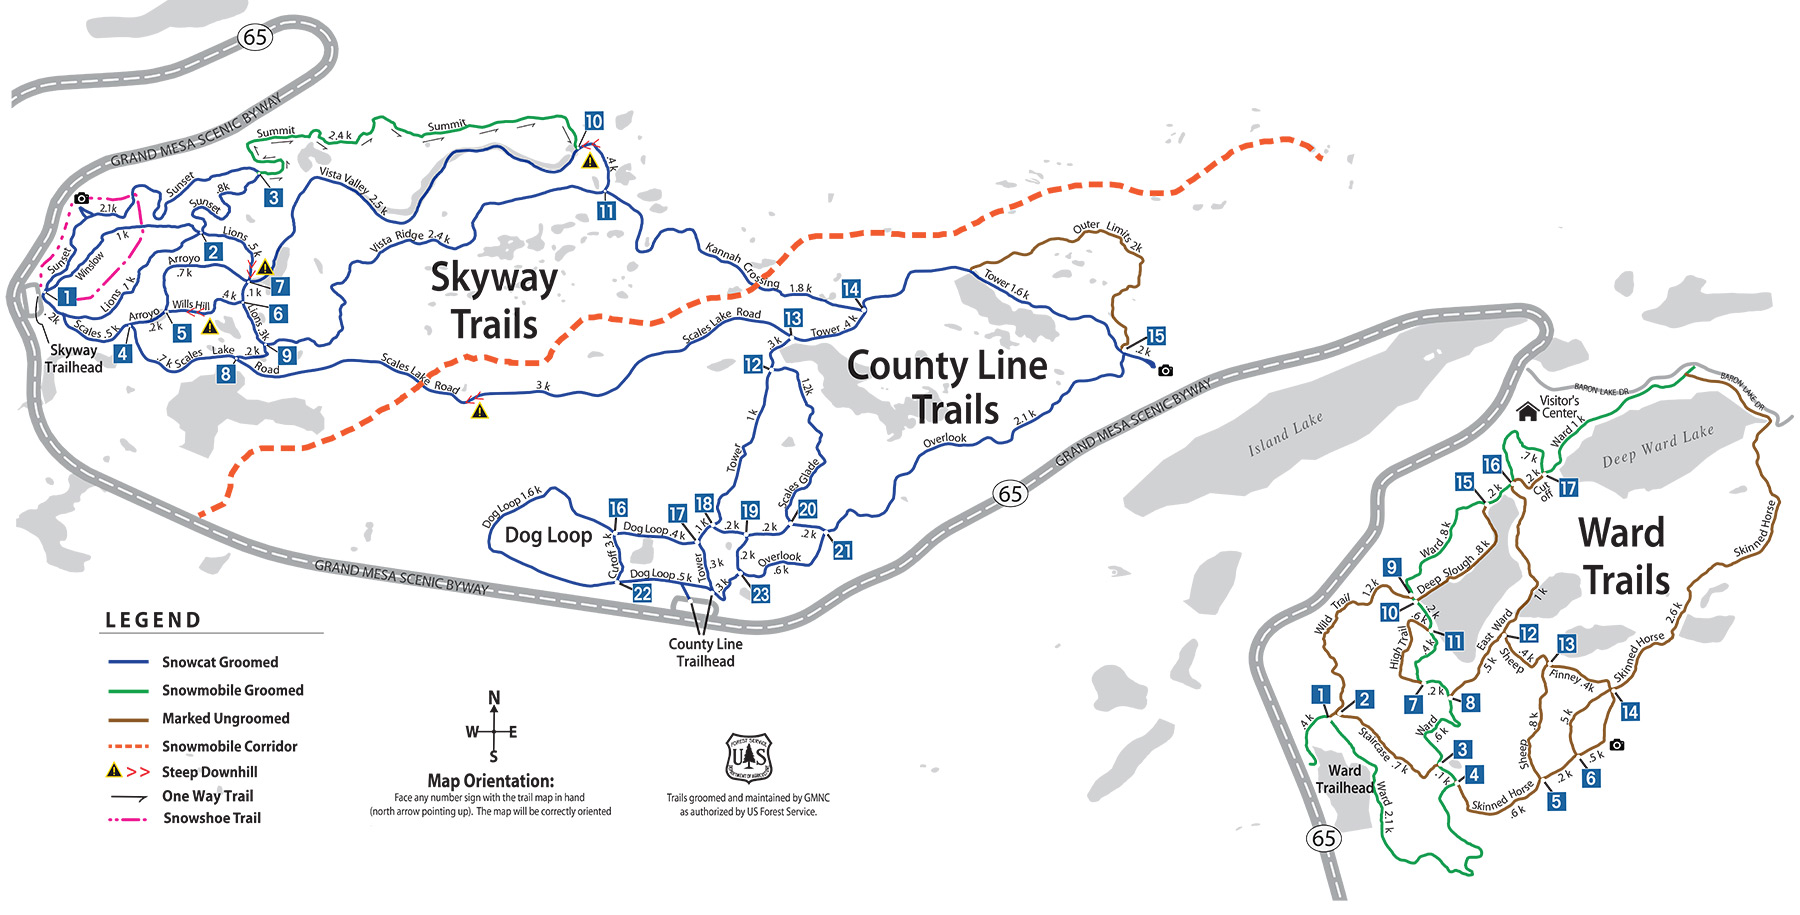 Grand Mesa Nordic Council cross country ski trails map for Grand Mesa in western Colorado.